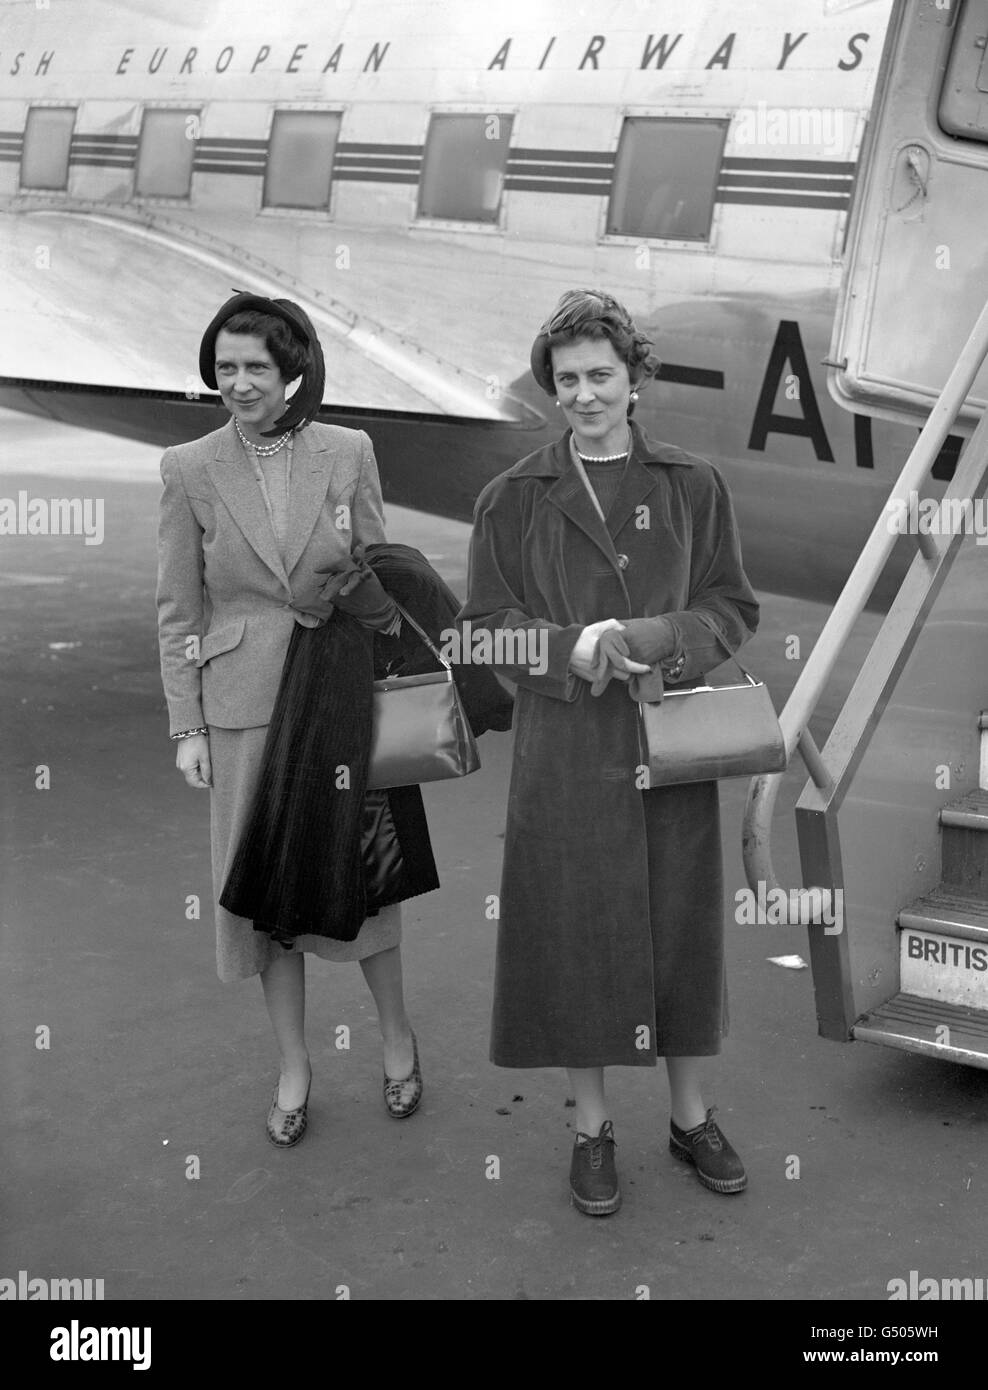 Royalty - Duchess of Kent and Countess Toerring - Northolt Airport Stock Photo